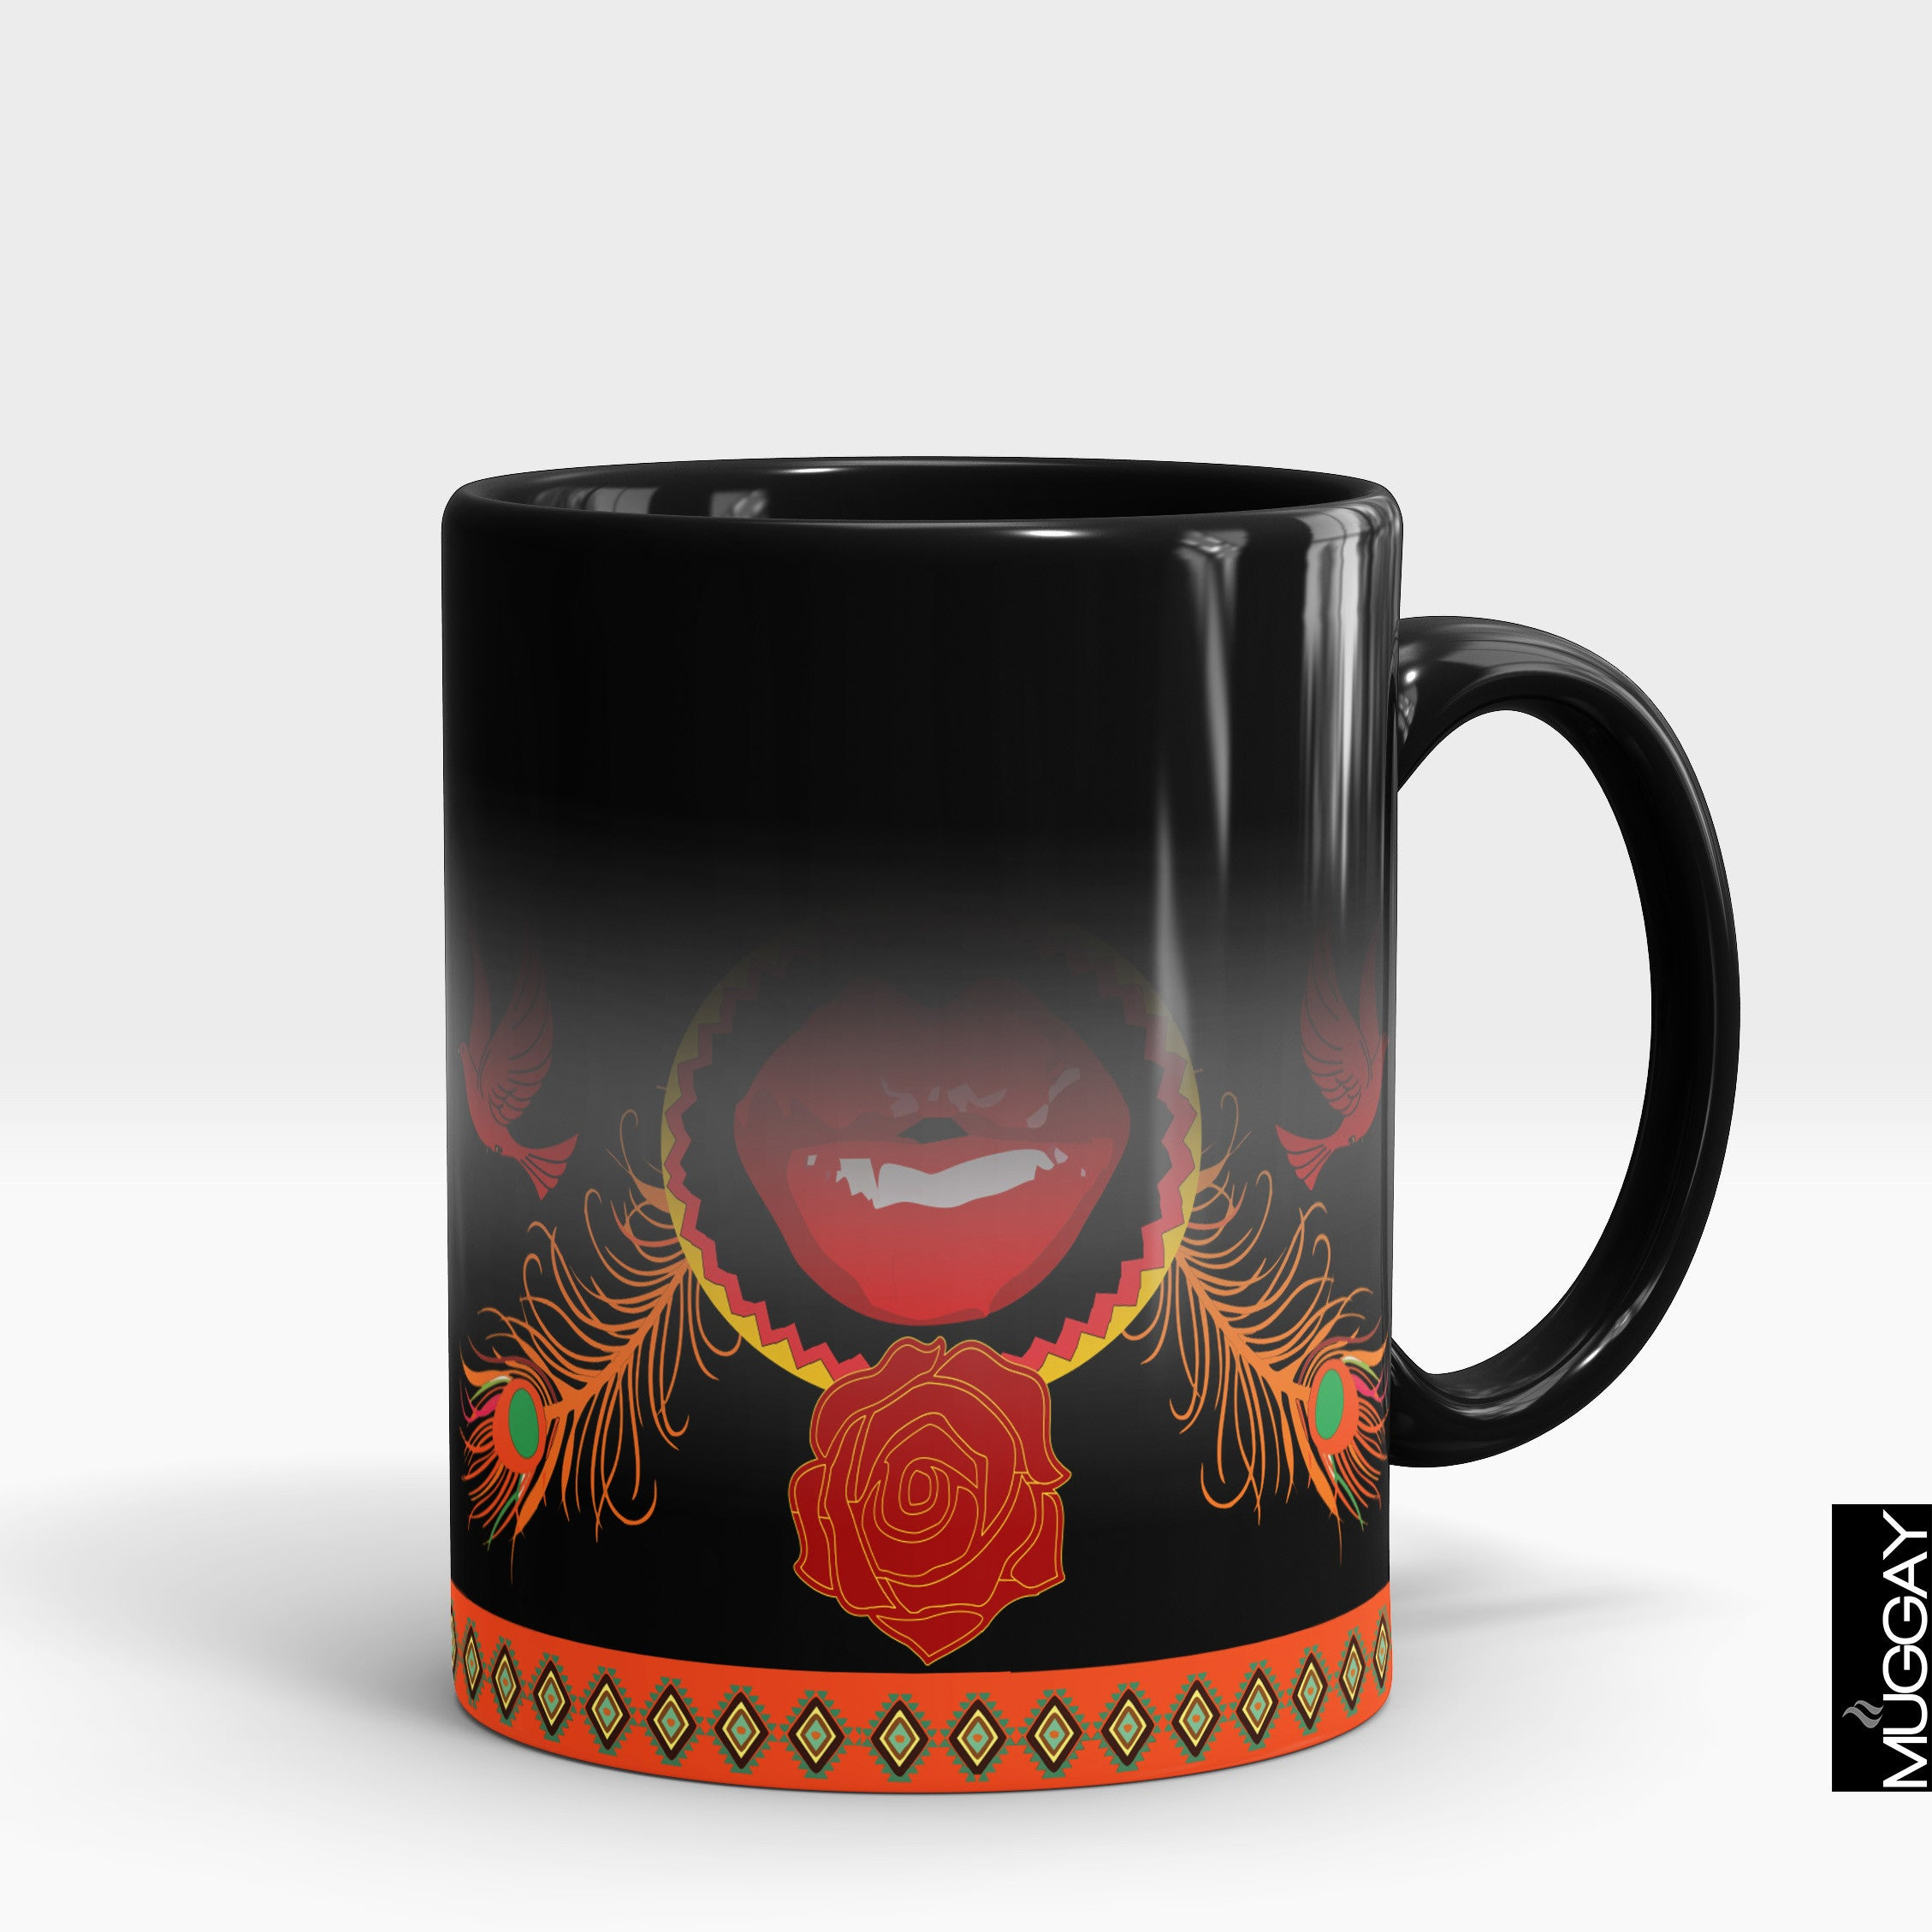 Desi funny Mugs12 - Muggay.com - Mugs - Printing shop - truck Art mugs - Mug printing - Customized printing - Digital printing - Muggay